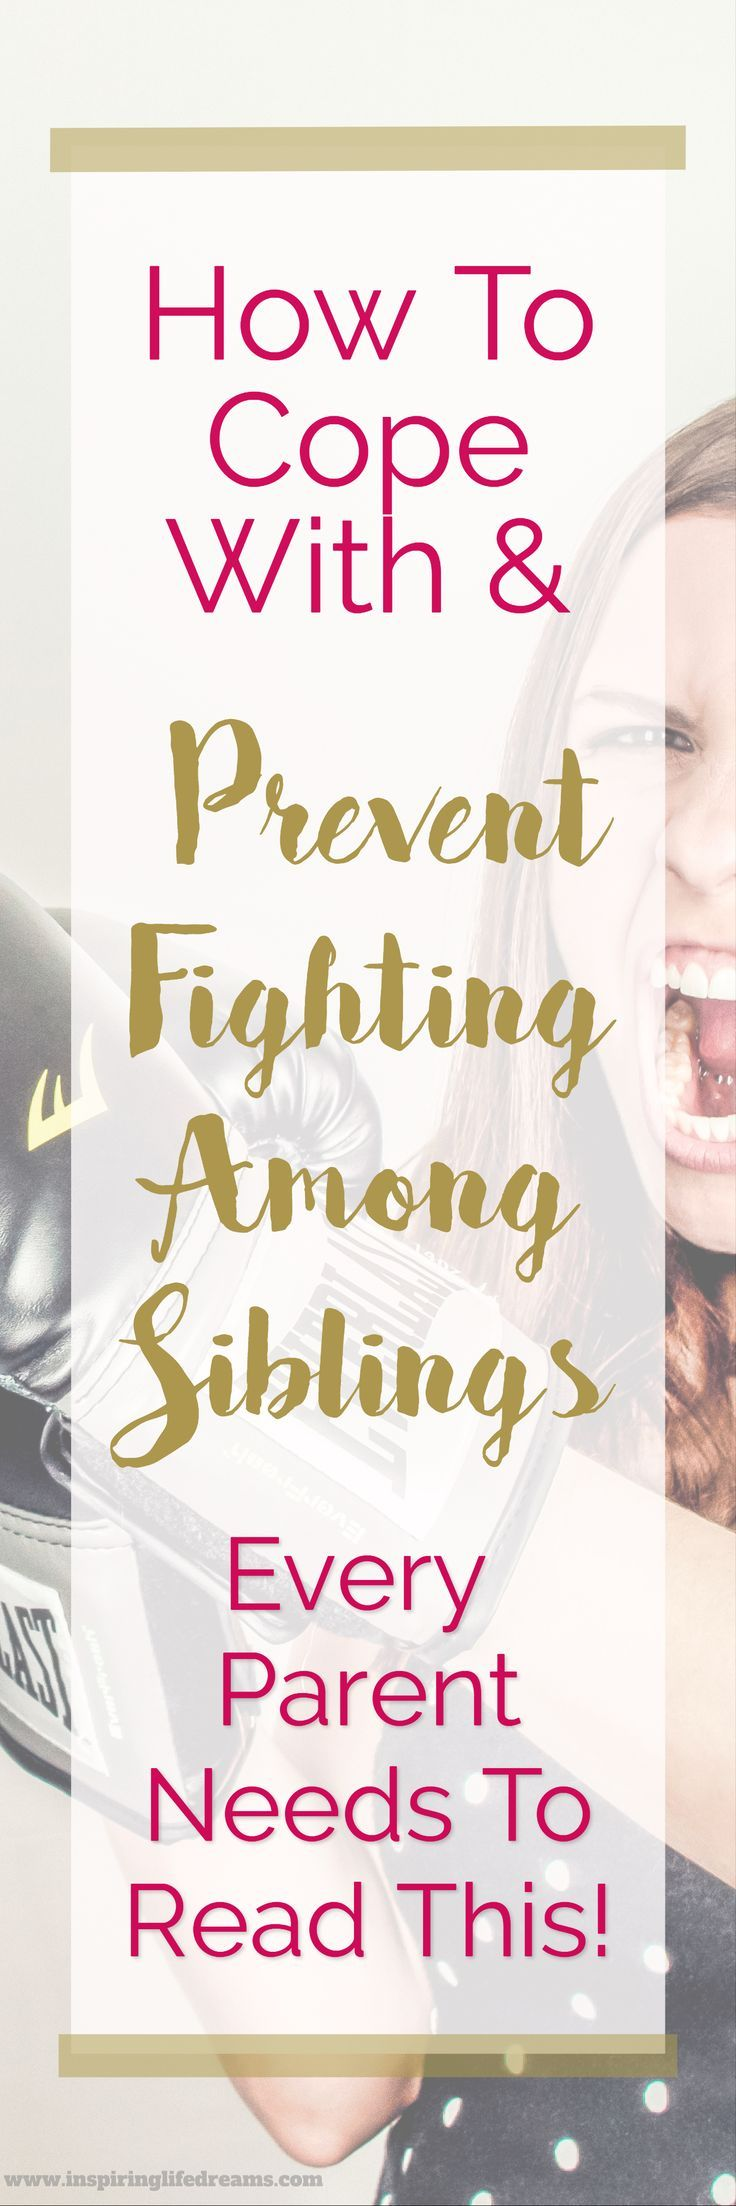 How To Cope With and Prevent Fighting Among Siblings | Every  Parent Needs To Read This! | Parenting Advice | Raising Happy Kids | Best Parenting Kids | Creating a Happy Family Life | How To Stop Fighting | Sibling Rivalry